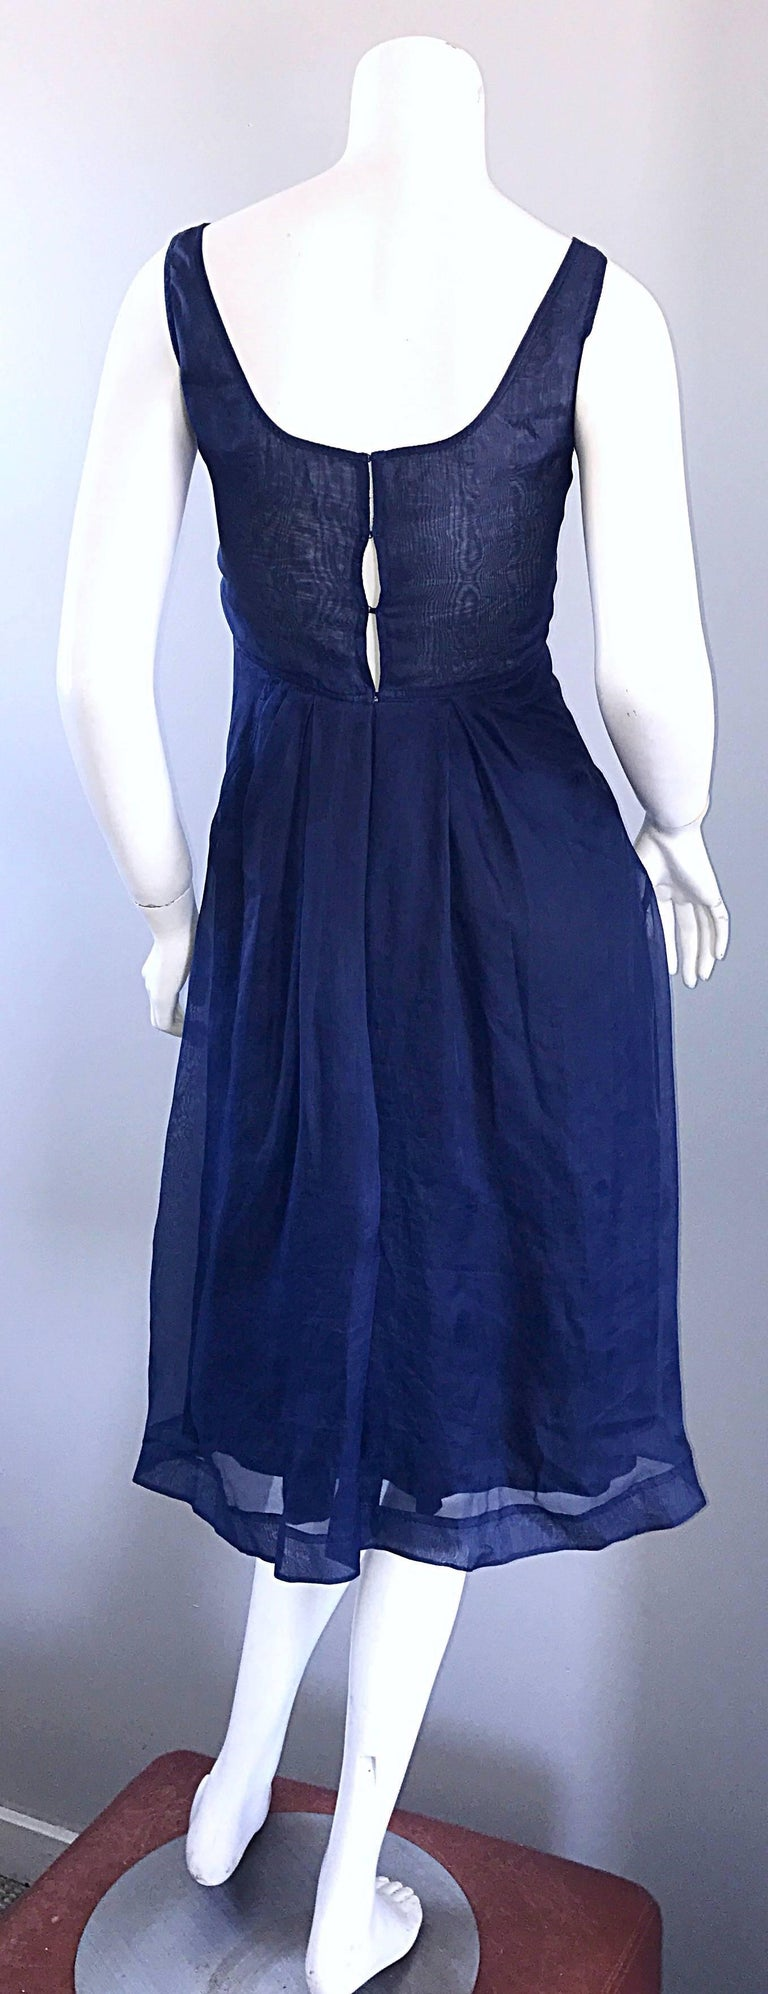 1990s Celine Navy Blue Silk Chiffon Sleeveless Overlay Sweetheart Vintage Dress In Excellent Condition For Sale In Chicago, IL